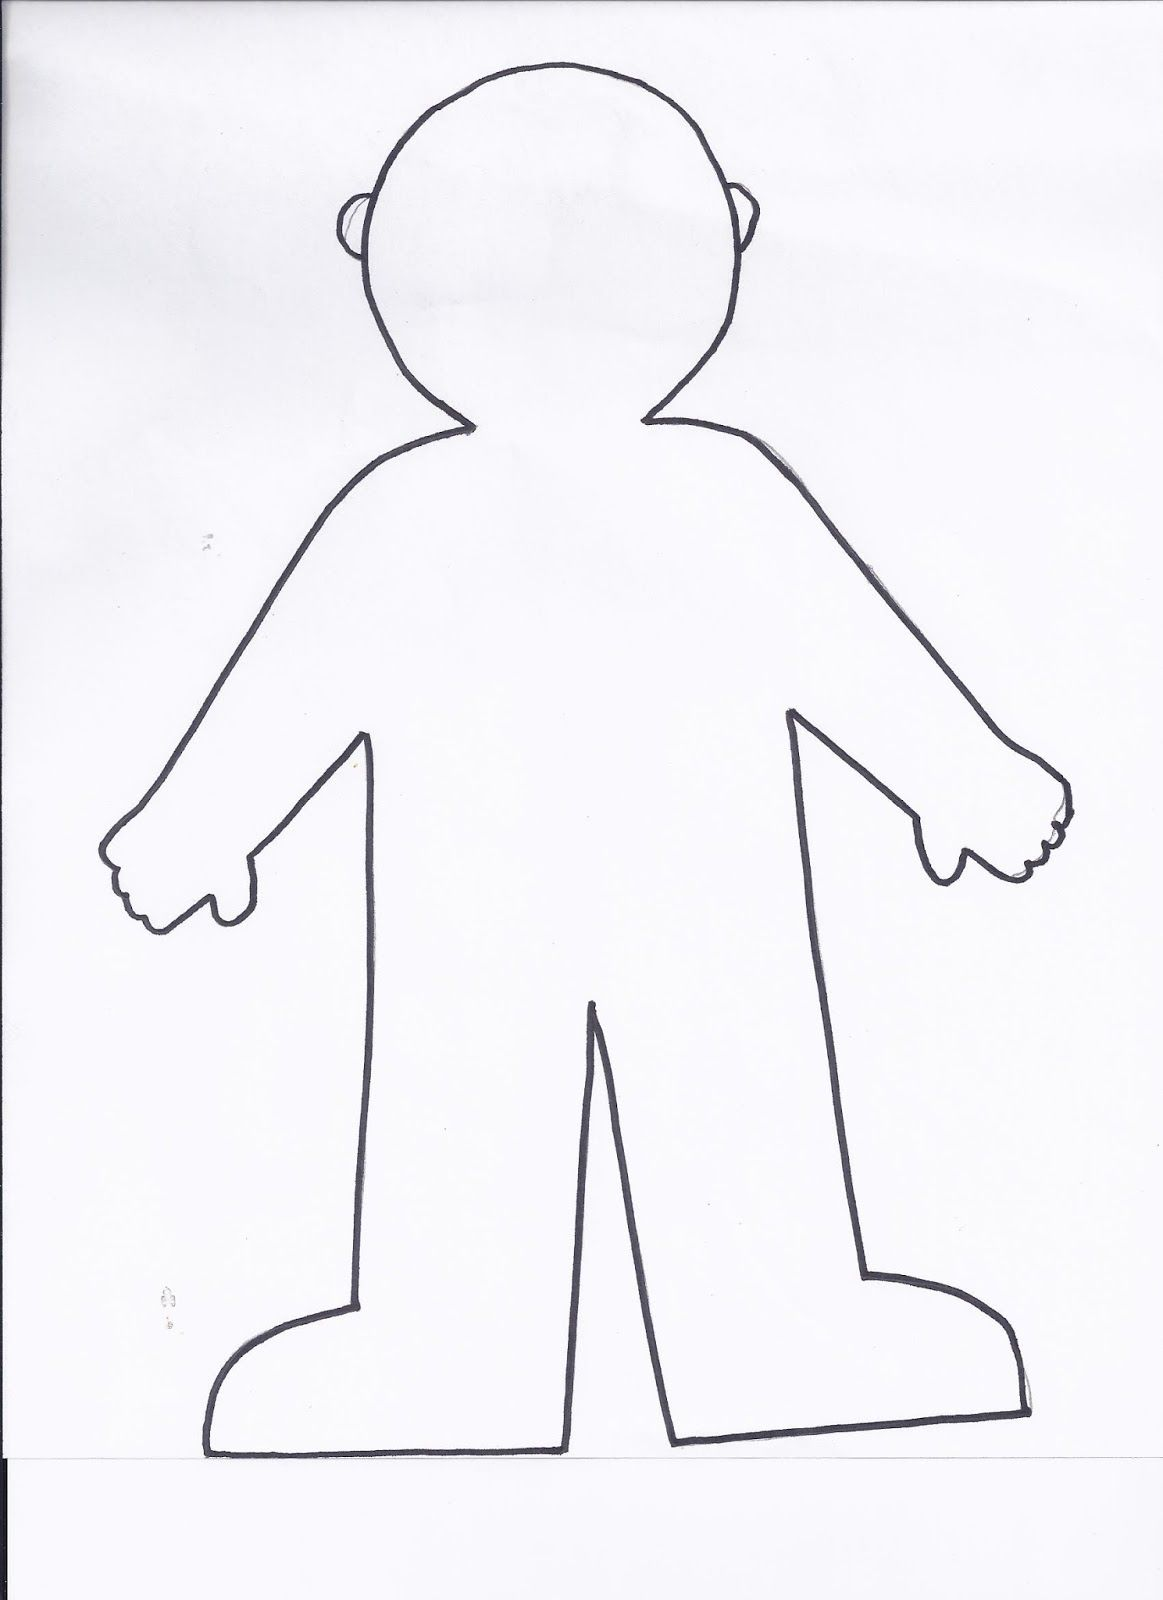 flat stanley coloring page # 5